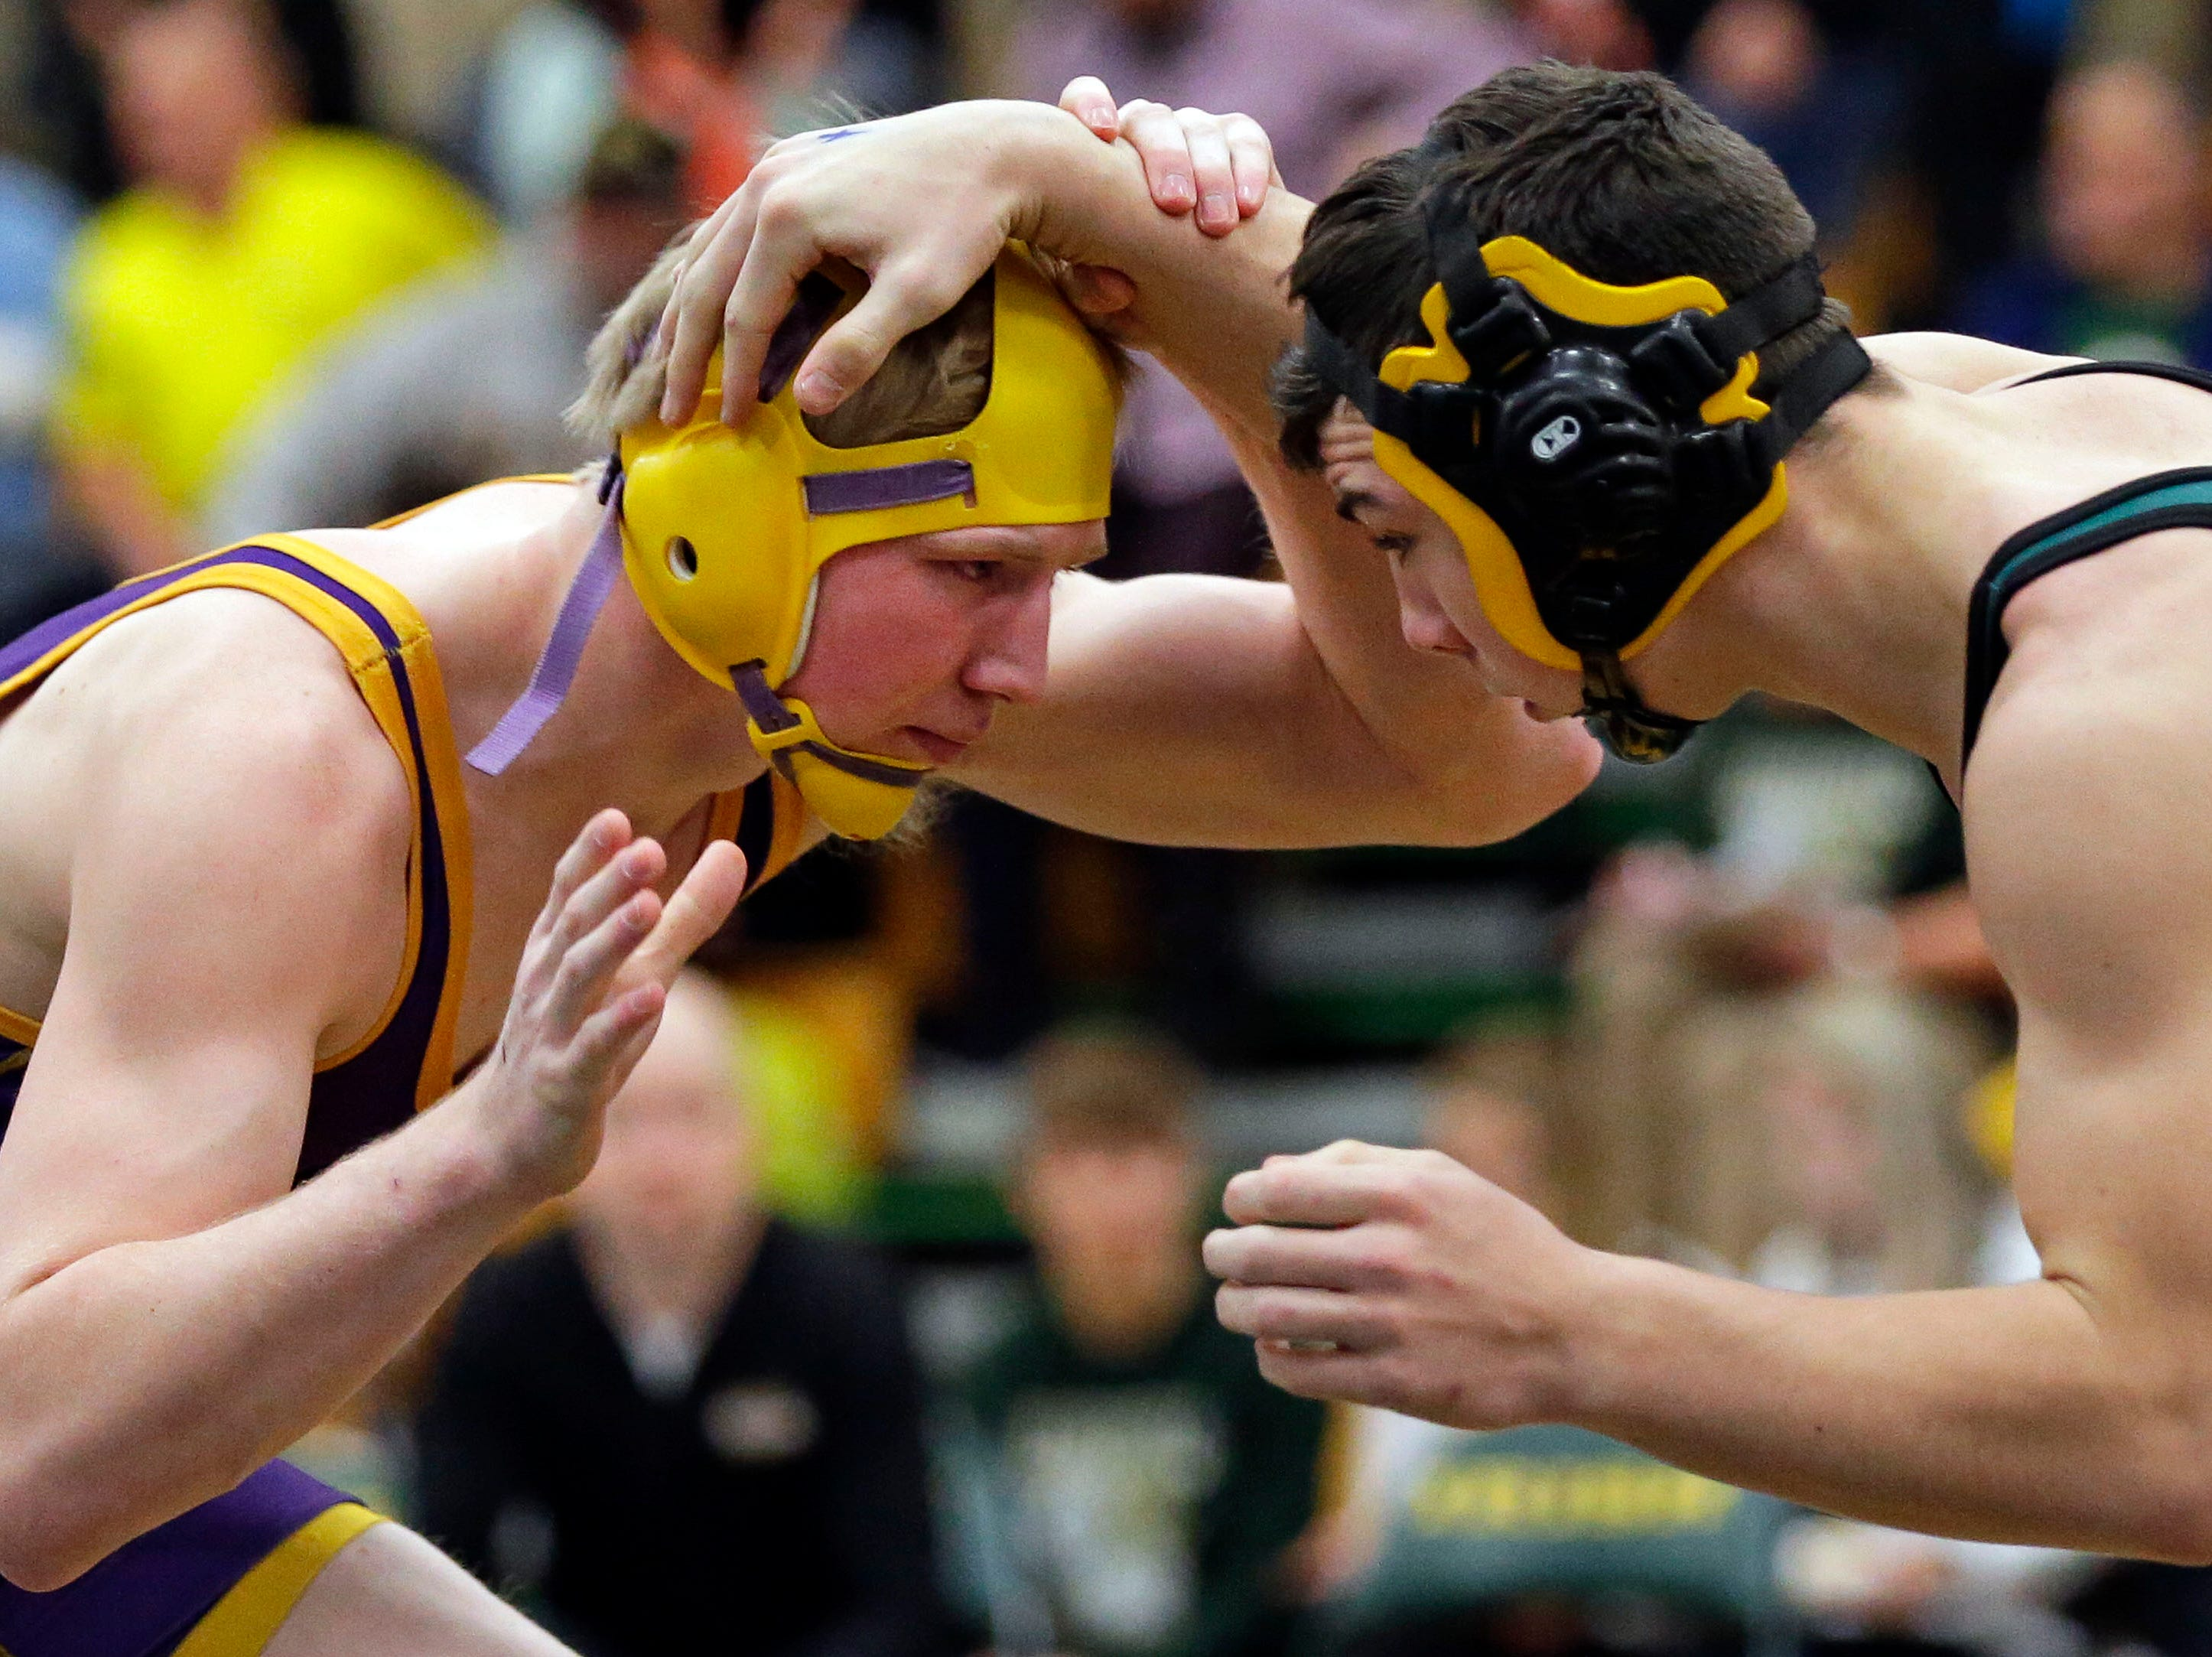 Alex Schmitz of Denmark, left, wrestles Connor Ramage of Ashwaubenon during the 2019 Freedom Irish Invitational Saturday, January 12, 2019, at Freedom High School in Freedom, Wis.